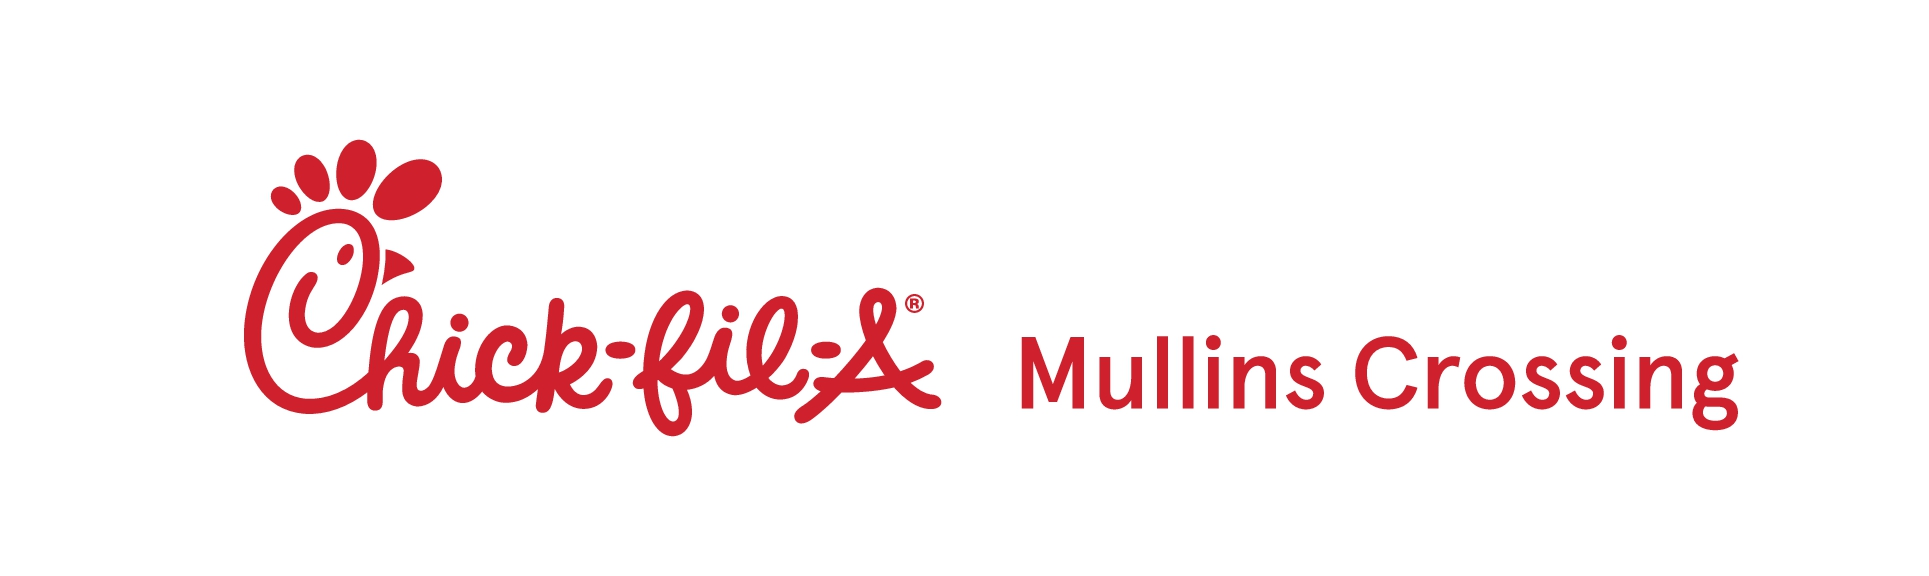 Chick-fil-A Mullins Crossing.jpg